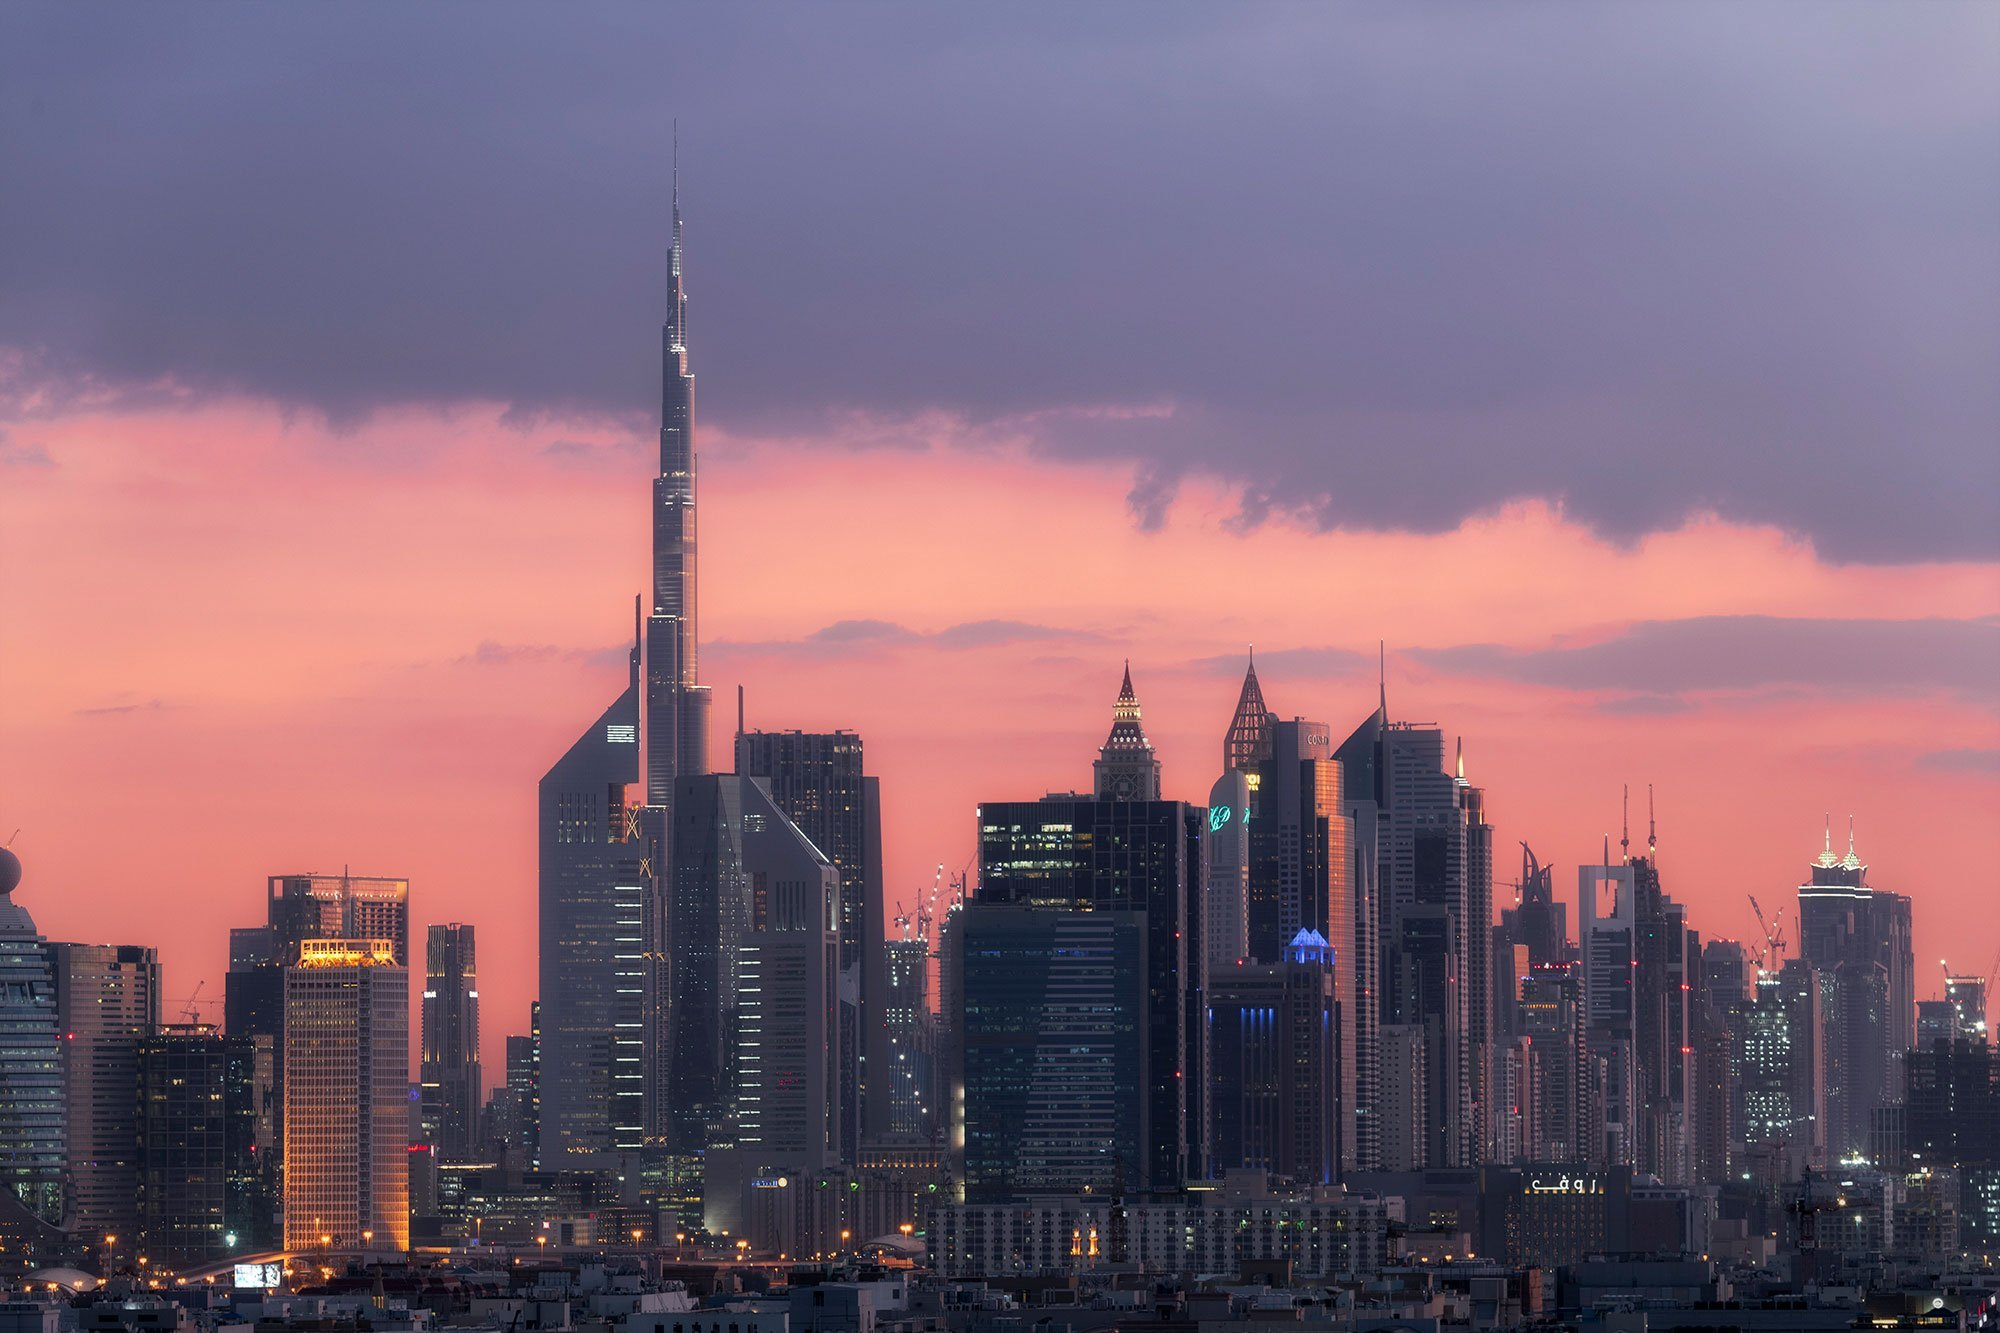 moody sunset over the architectural skyline of Dubai